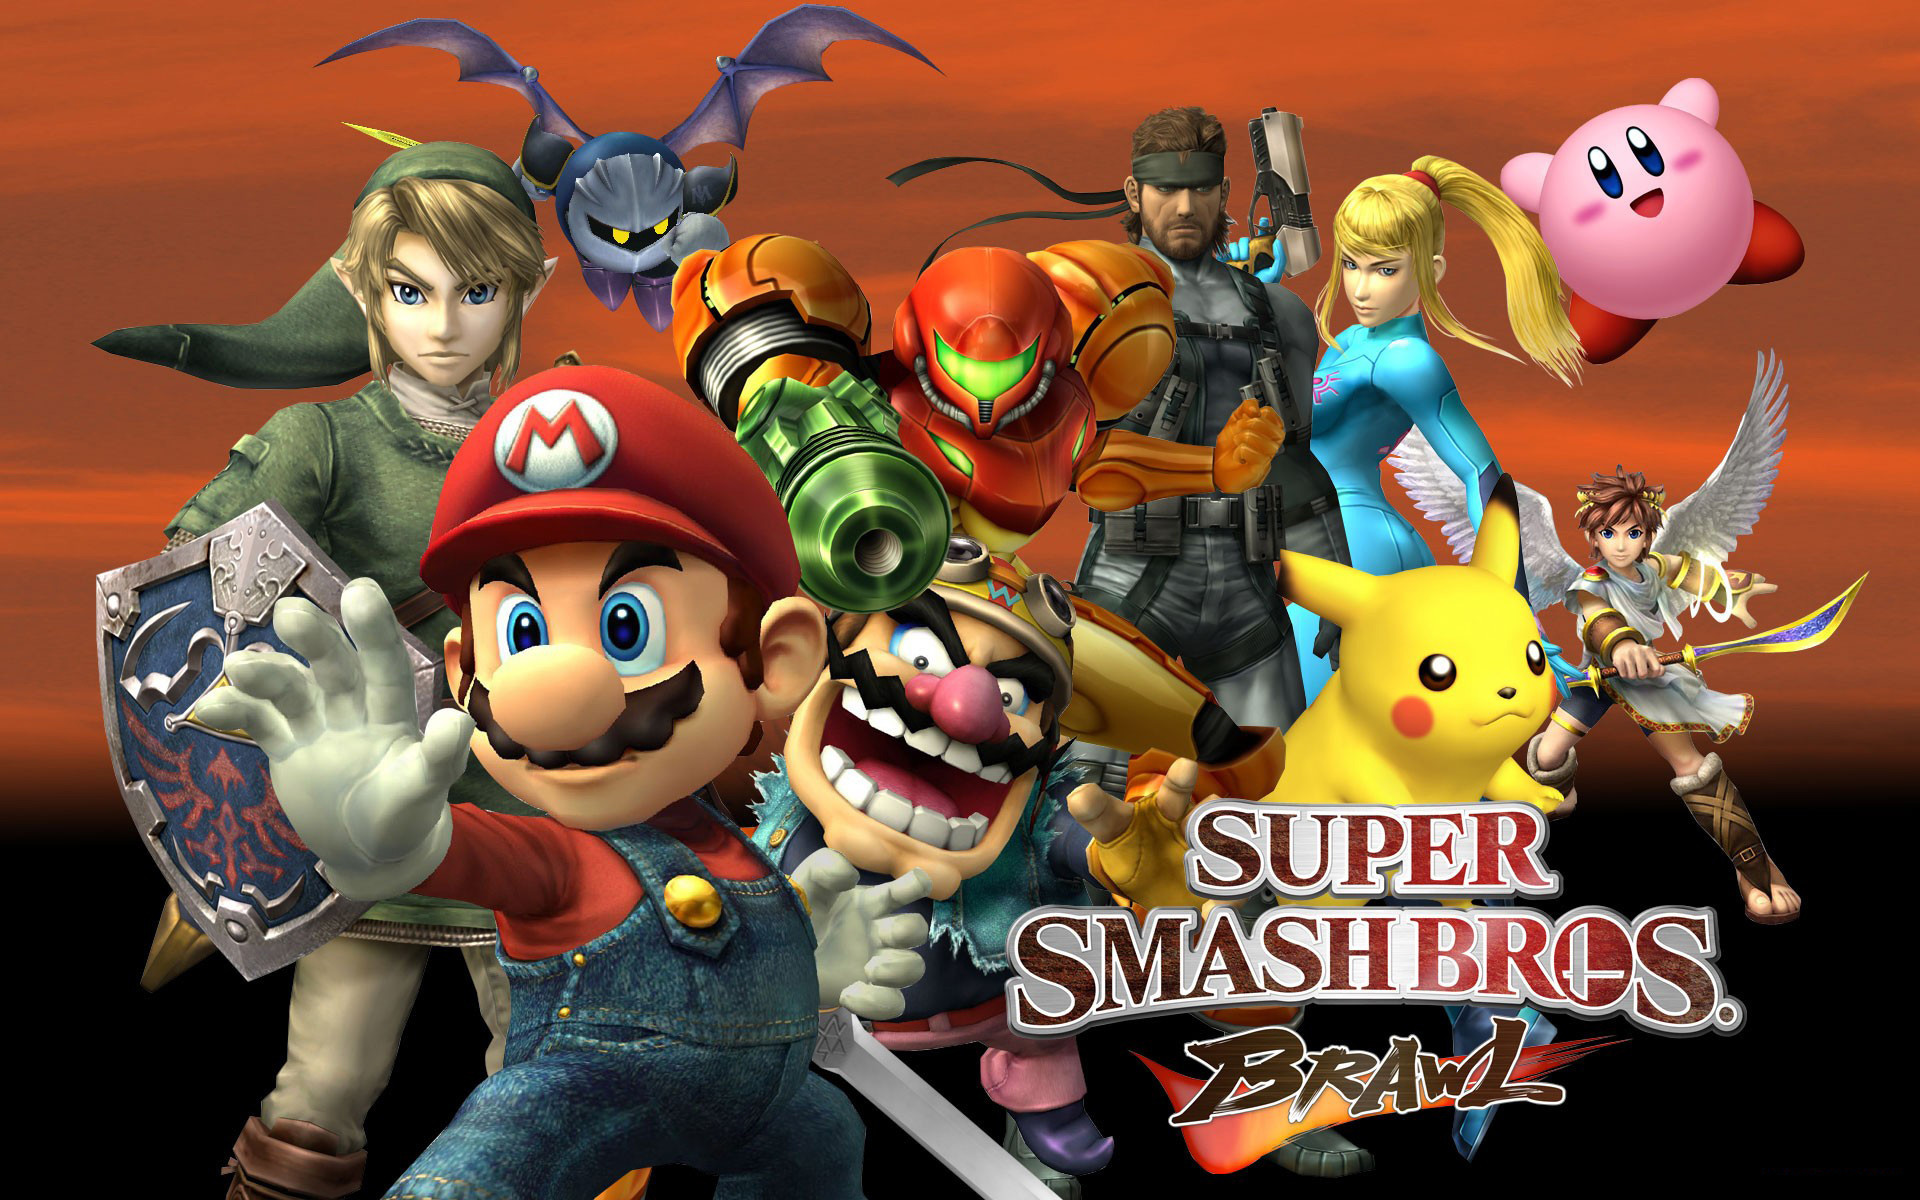 Super Smash Bros Brawl Wallpaper Wallpapertag